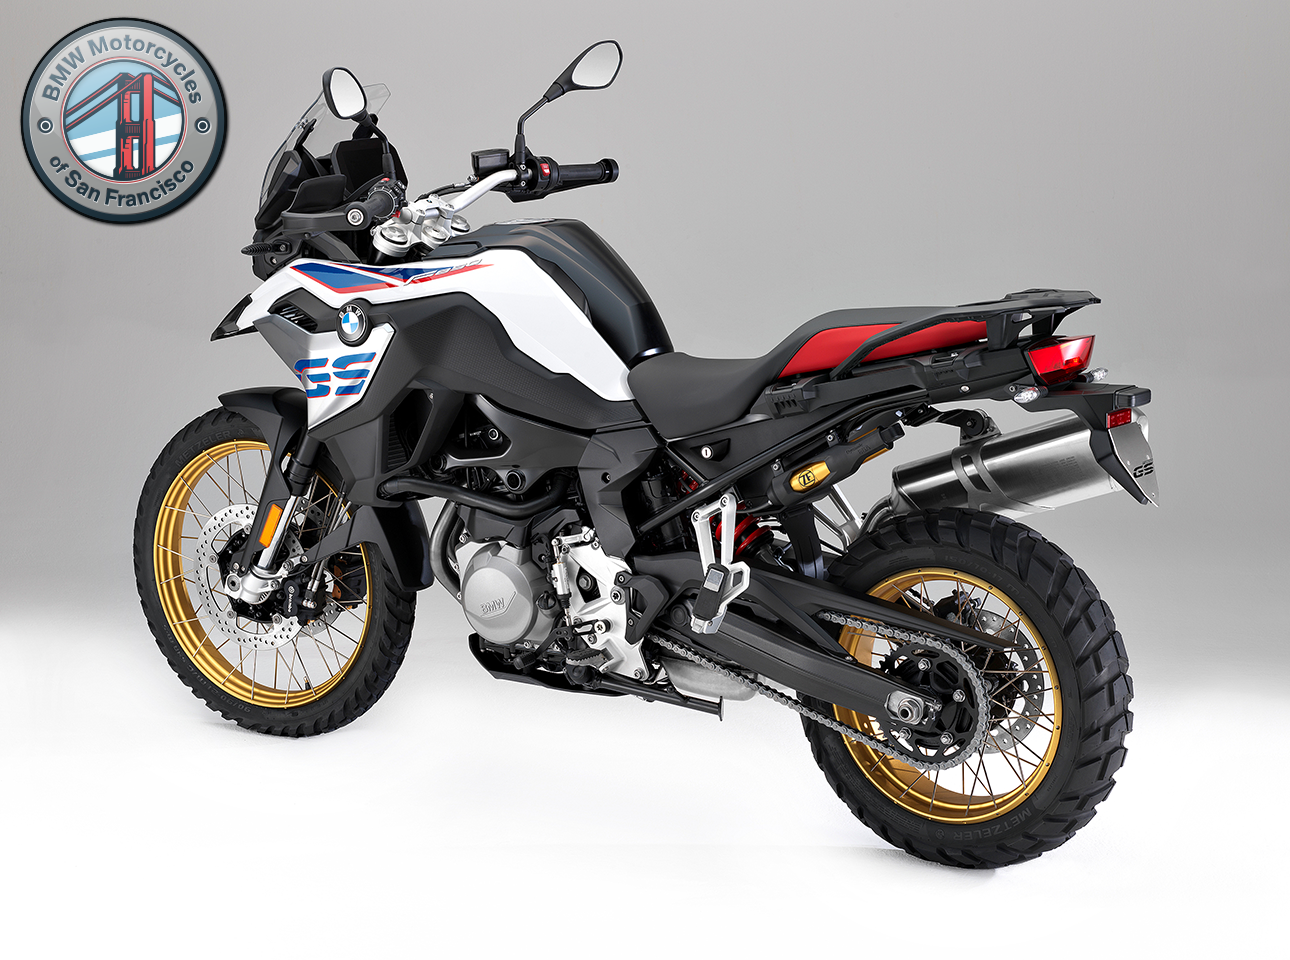 the new 2019 bmw f 850 gs bmw motorcycles of san francisco. Black Bedroom Furniture Sets. Home Design Ideas